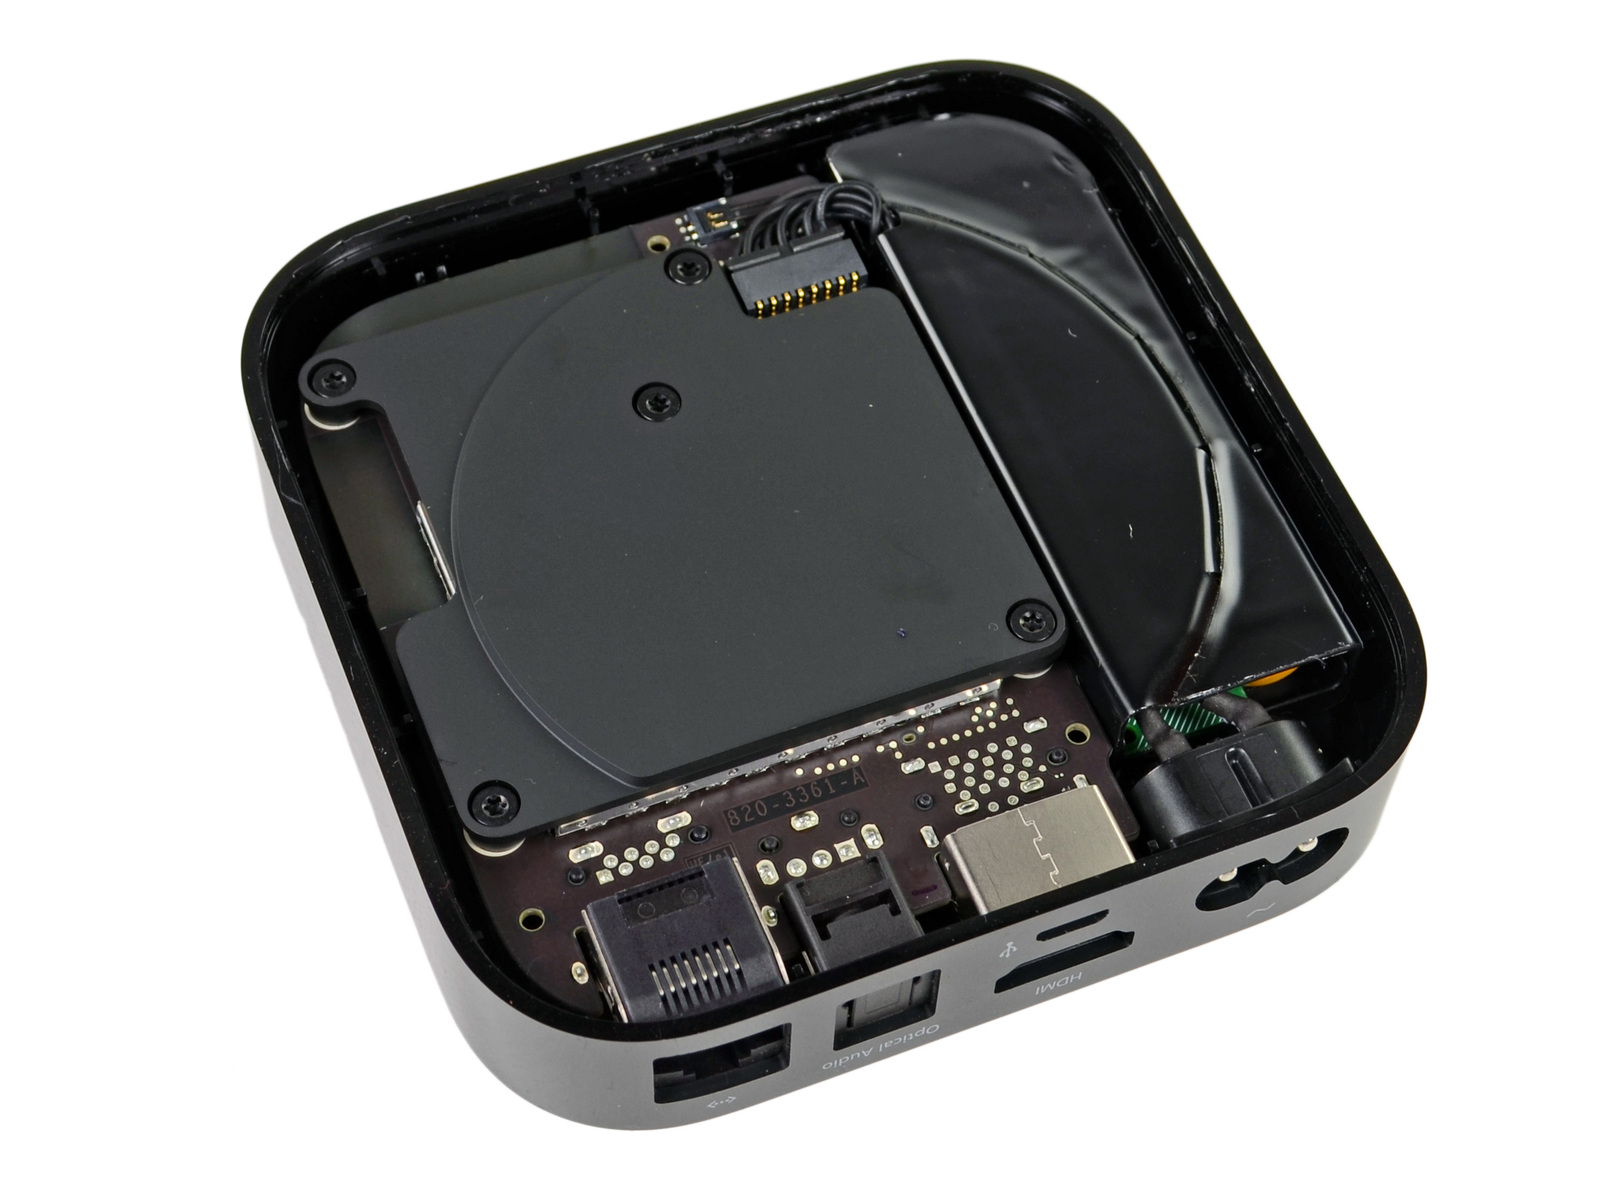 Buy Apple tv gets ifixit tear down